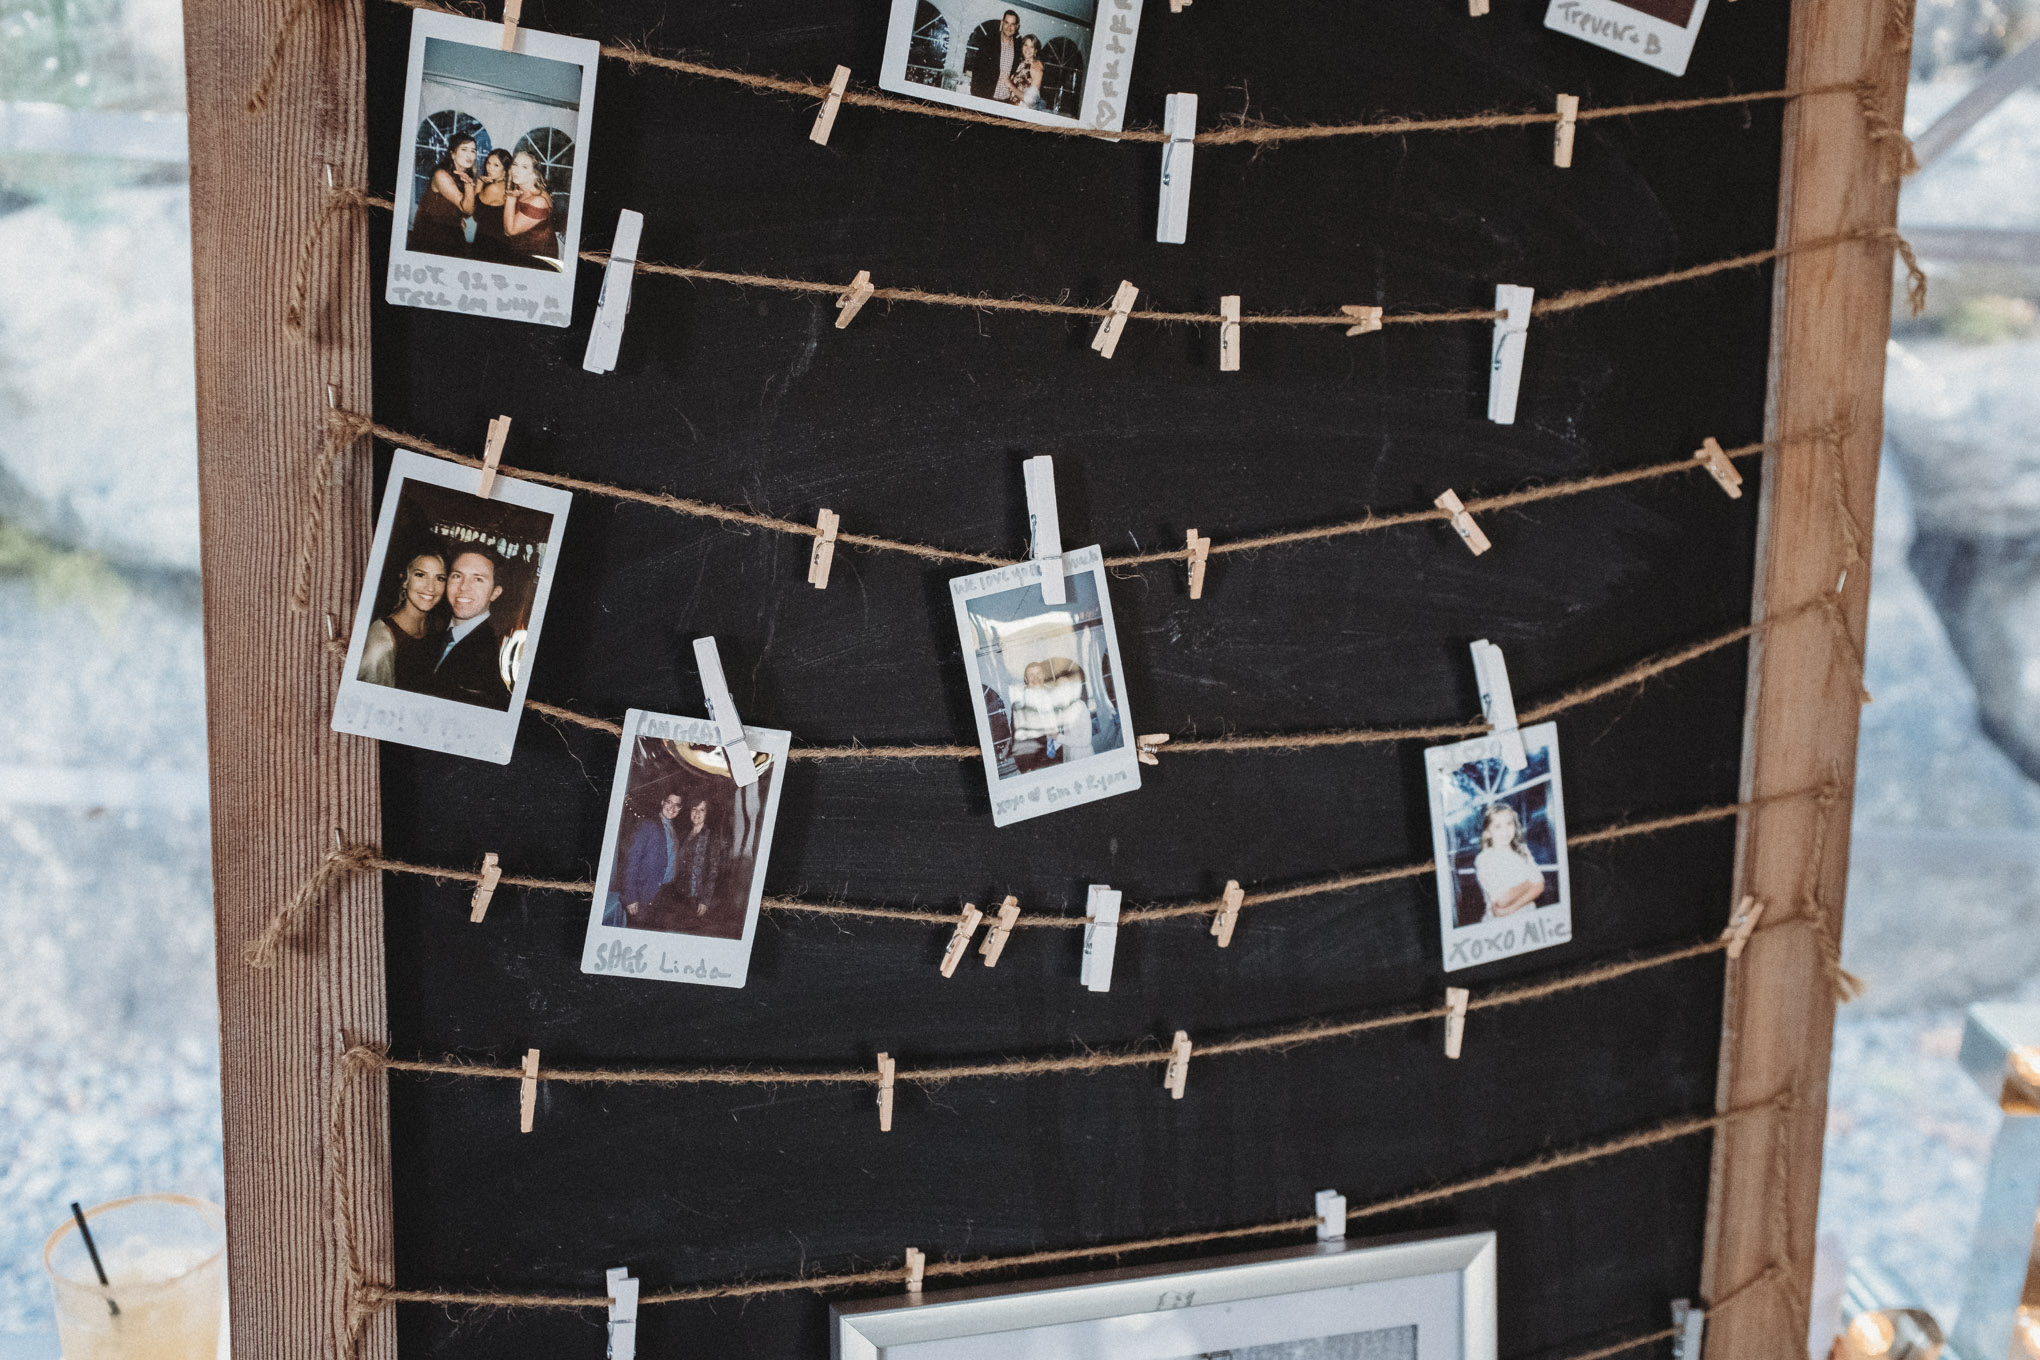 Close up of Polariod pictures that hang from a board.